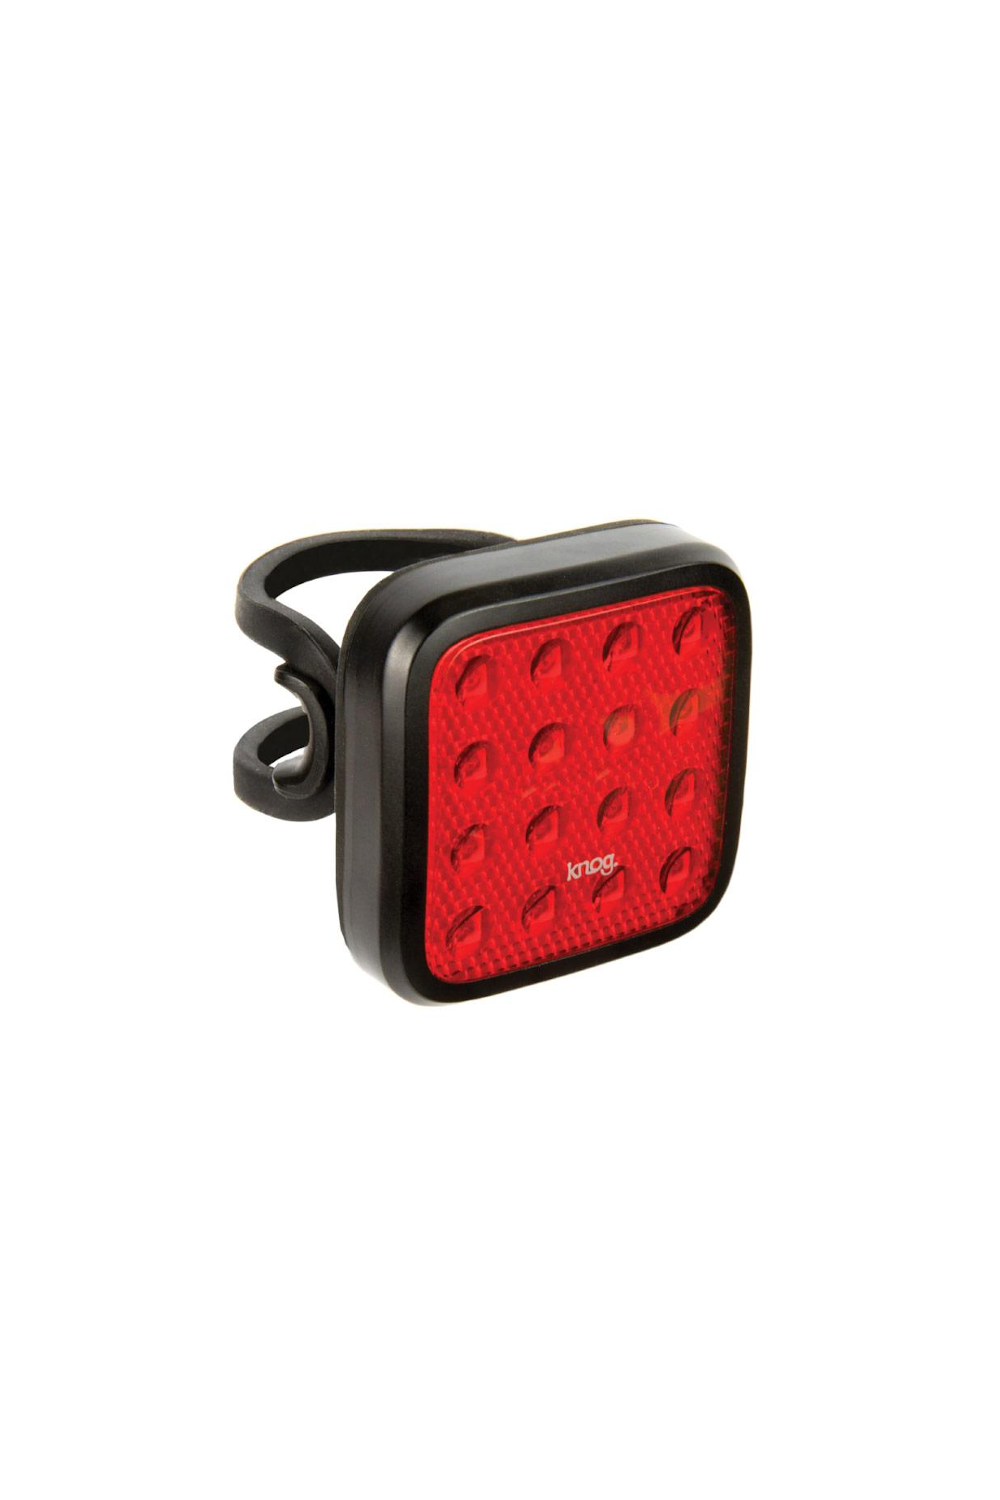 LIGHT KNOG BLINDER MOB, KID GRID, BLACK, REAR